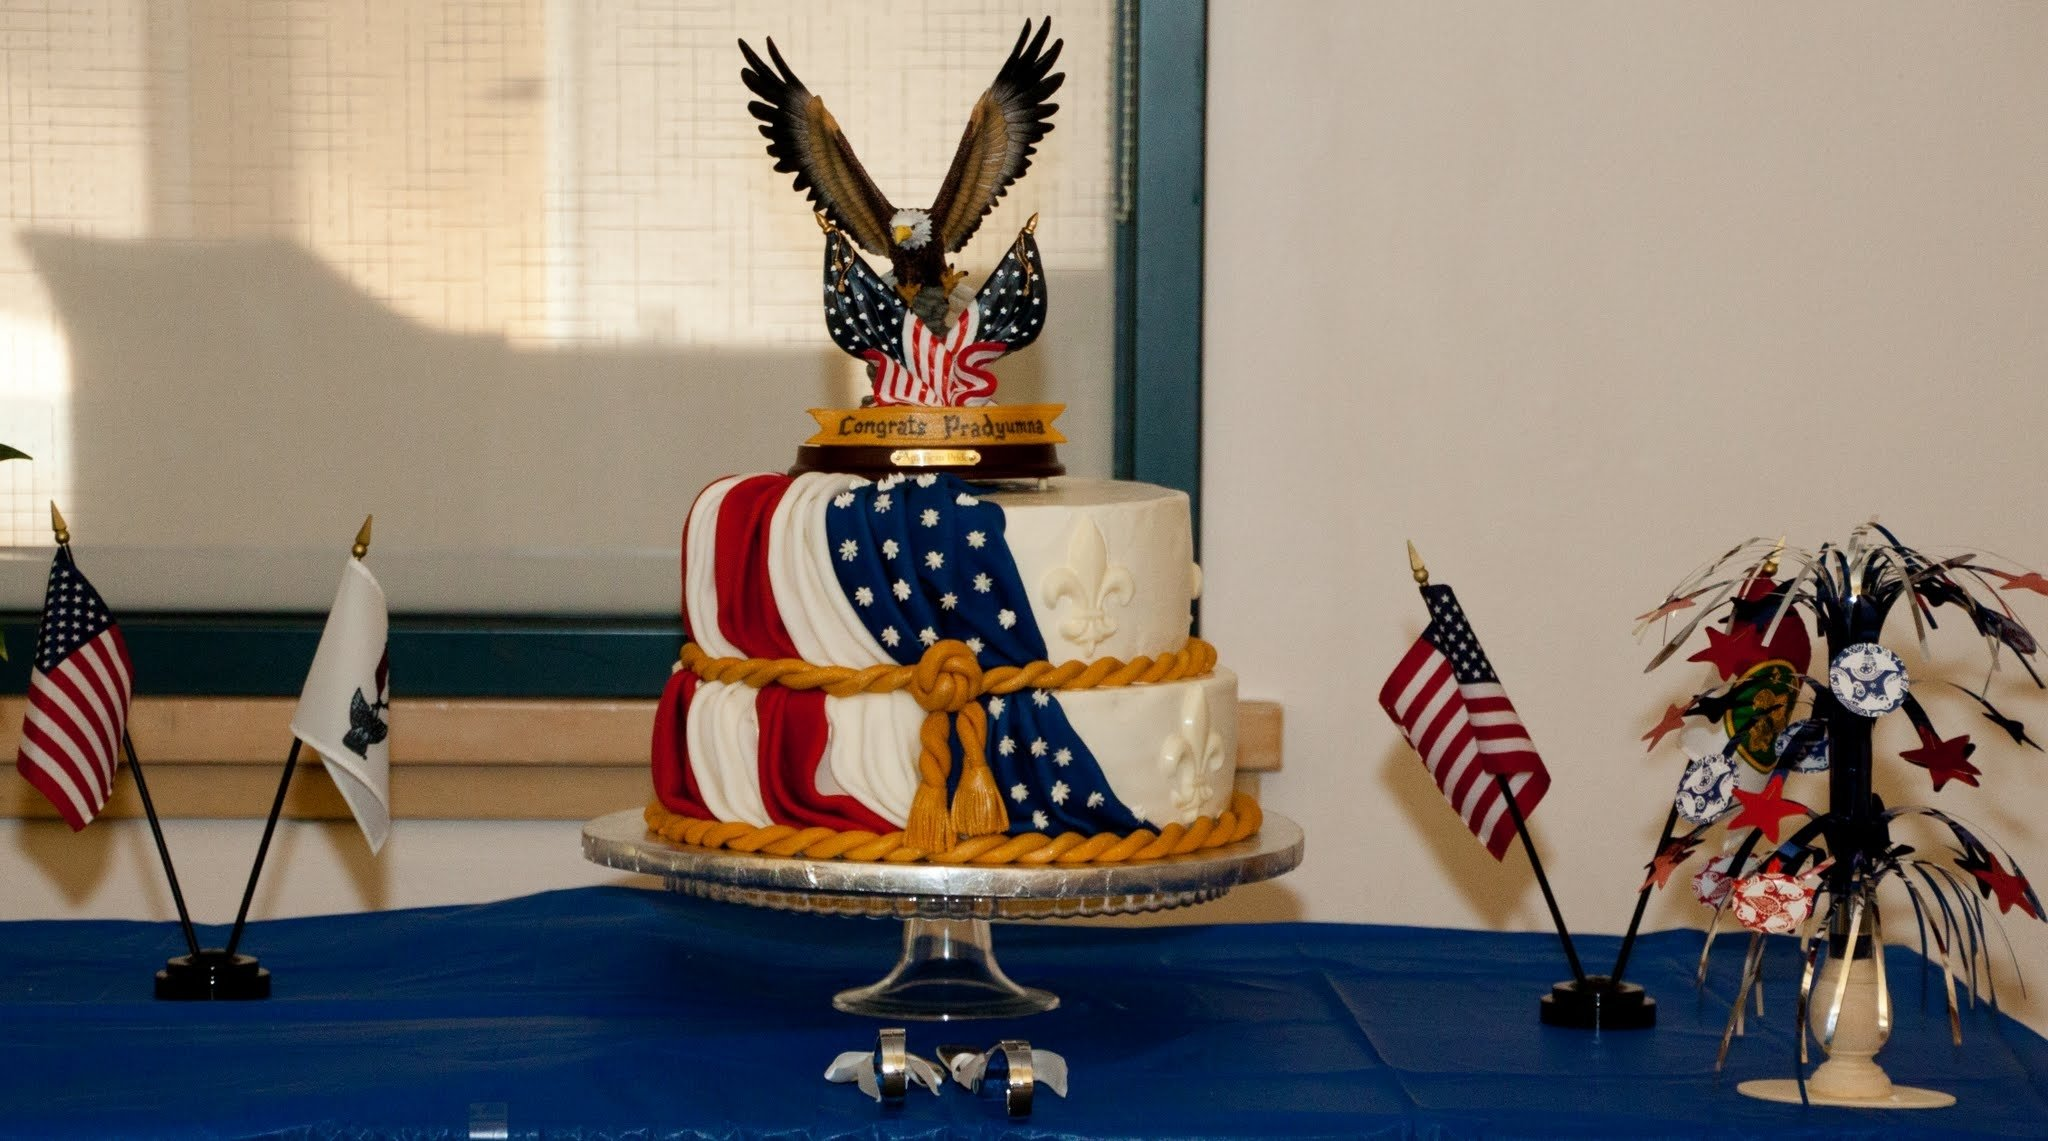 10 Spectacular Boy Scout Court Of Honor Ideas eagle court of honor cake baked in heaven